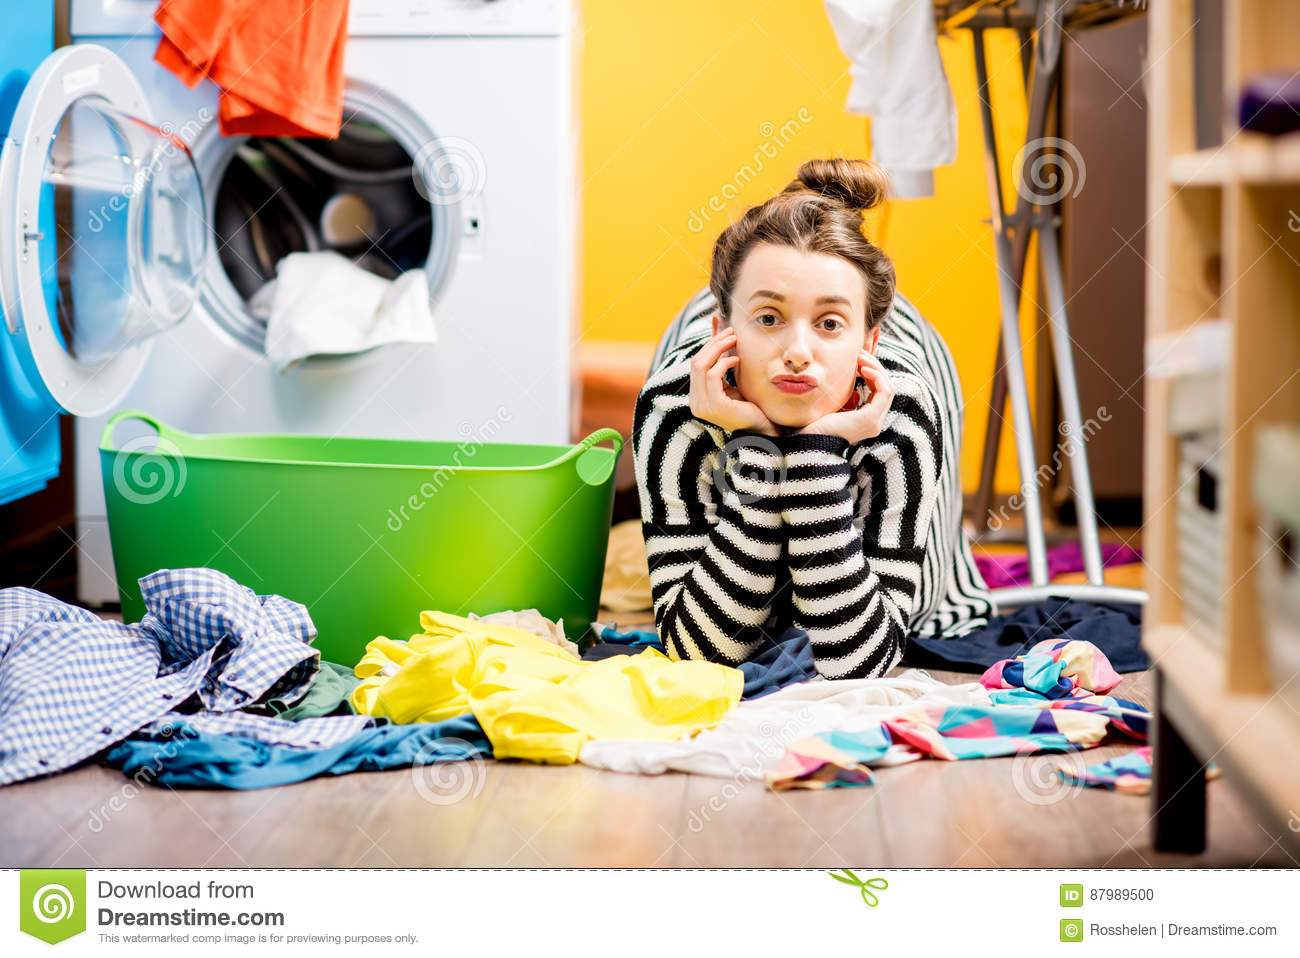 Woman Washing Clothes At Home Stock Photo - Image of